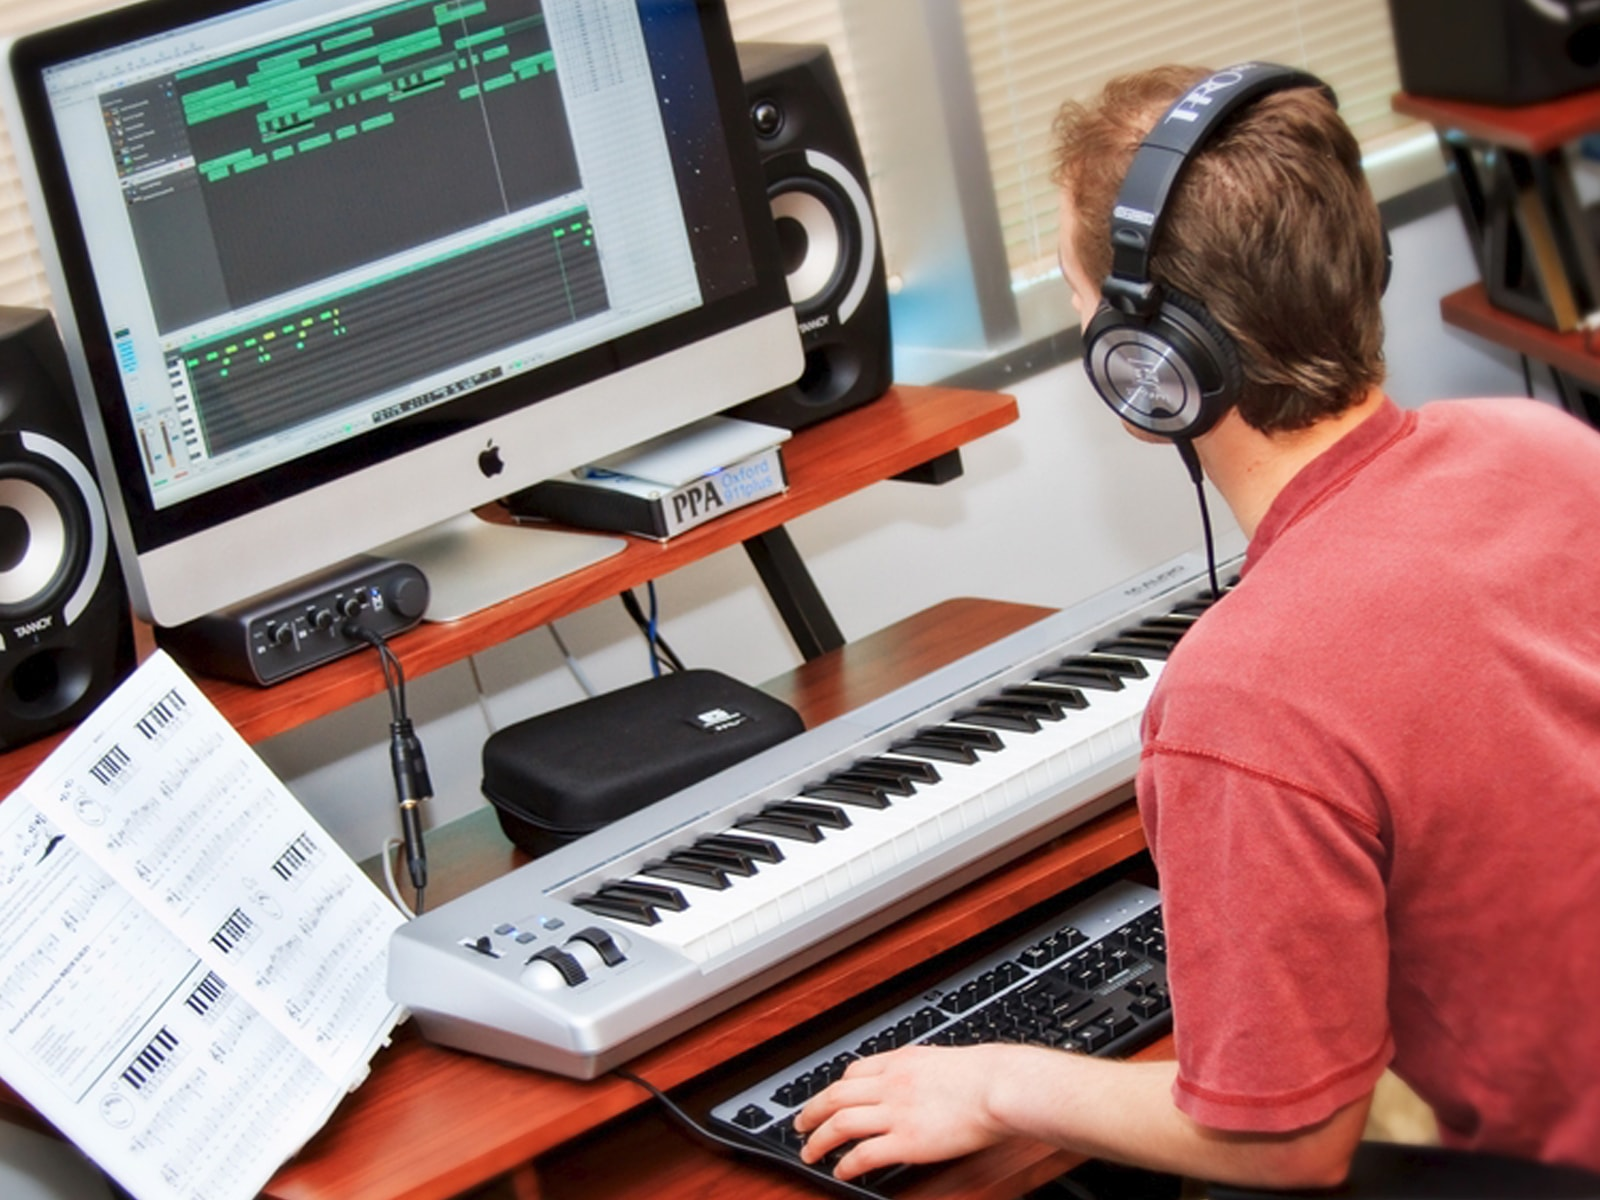 DigiPen sound design student composing music with a computer and a digital piano keyboard